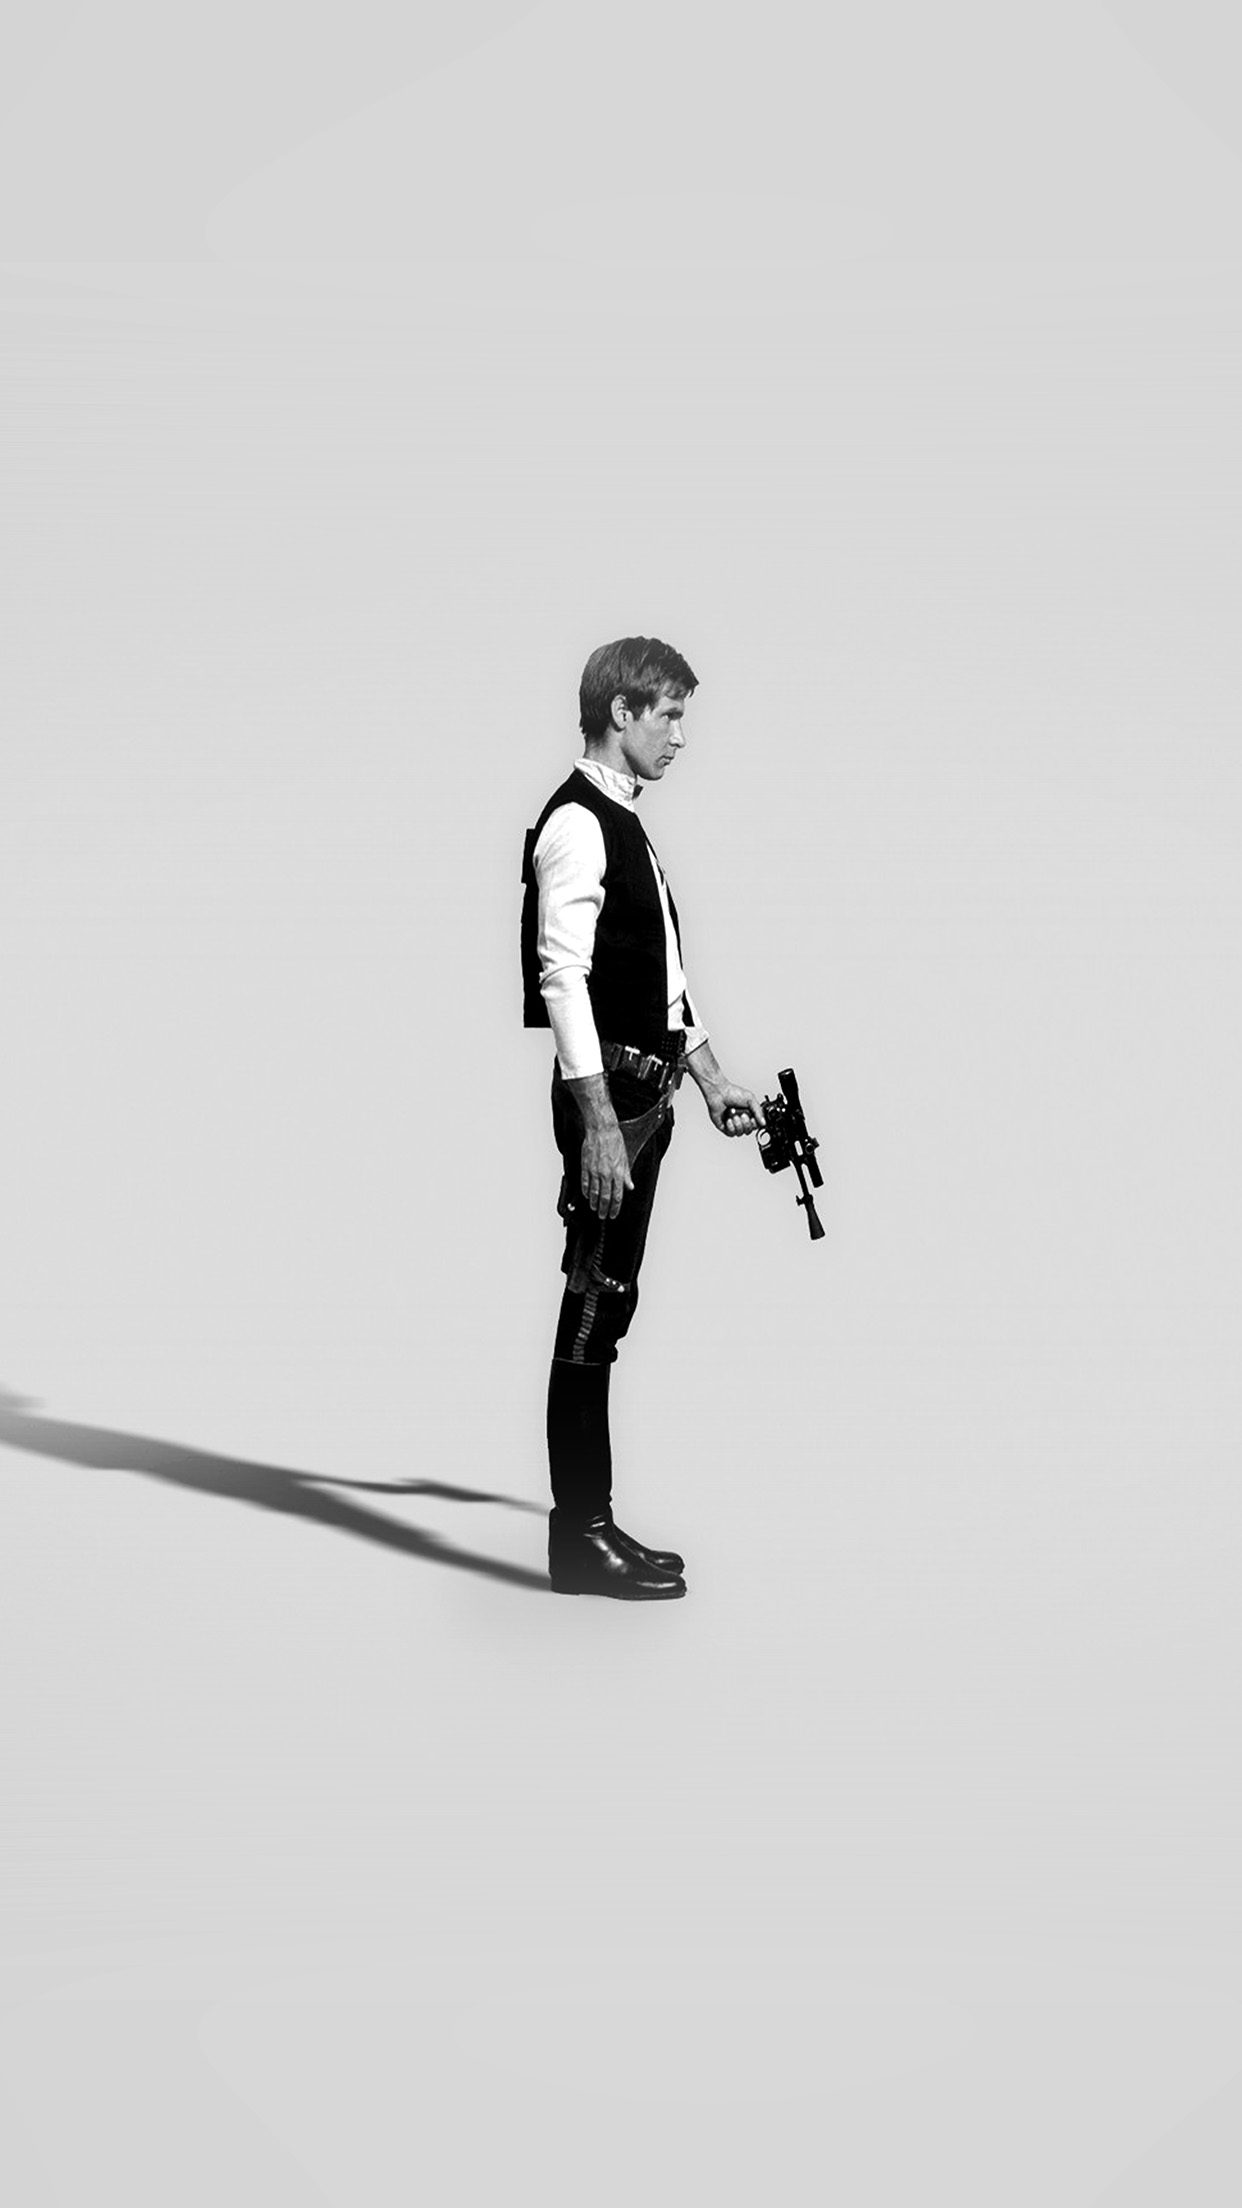 papers.co hh19 han solo starwars hero art minimal bw 34 iphone6 plus wallpaper